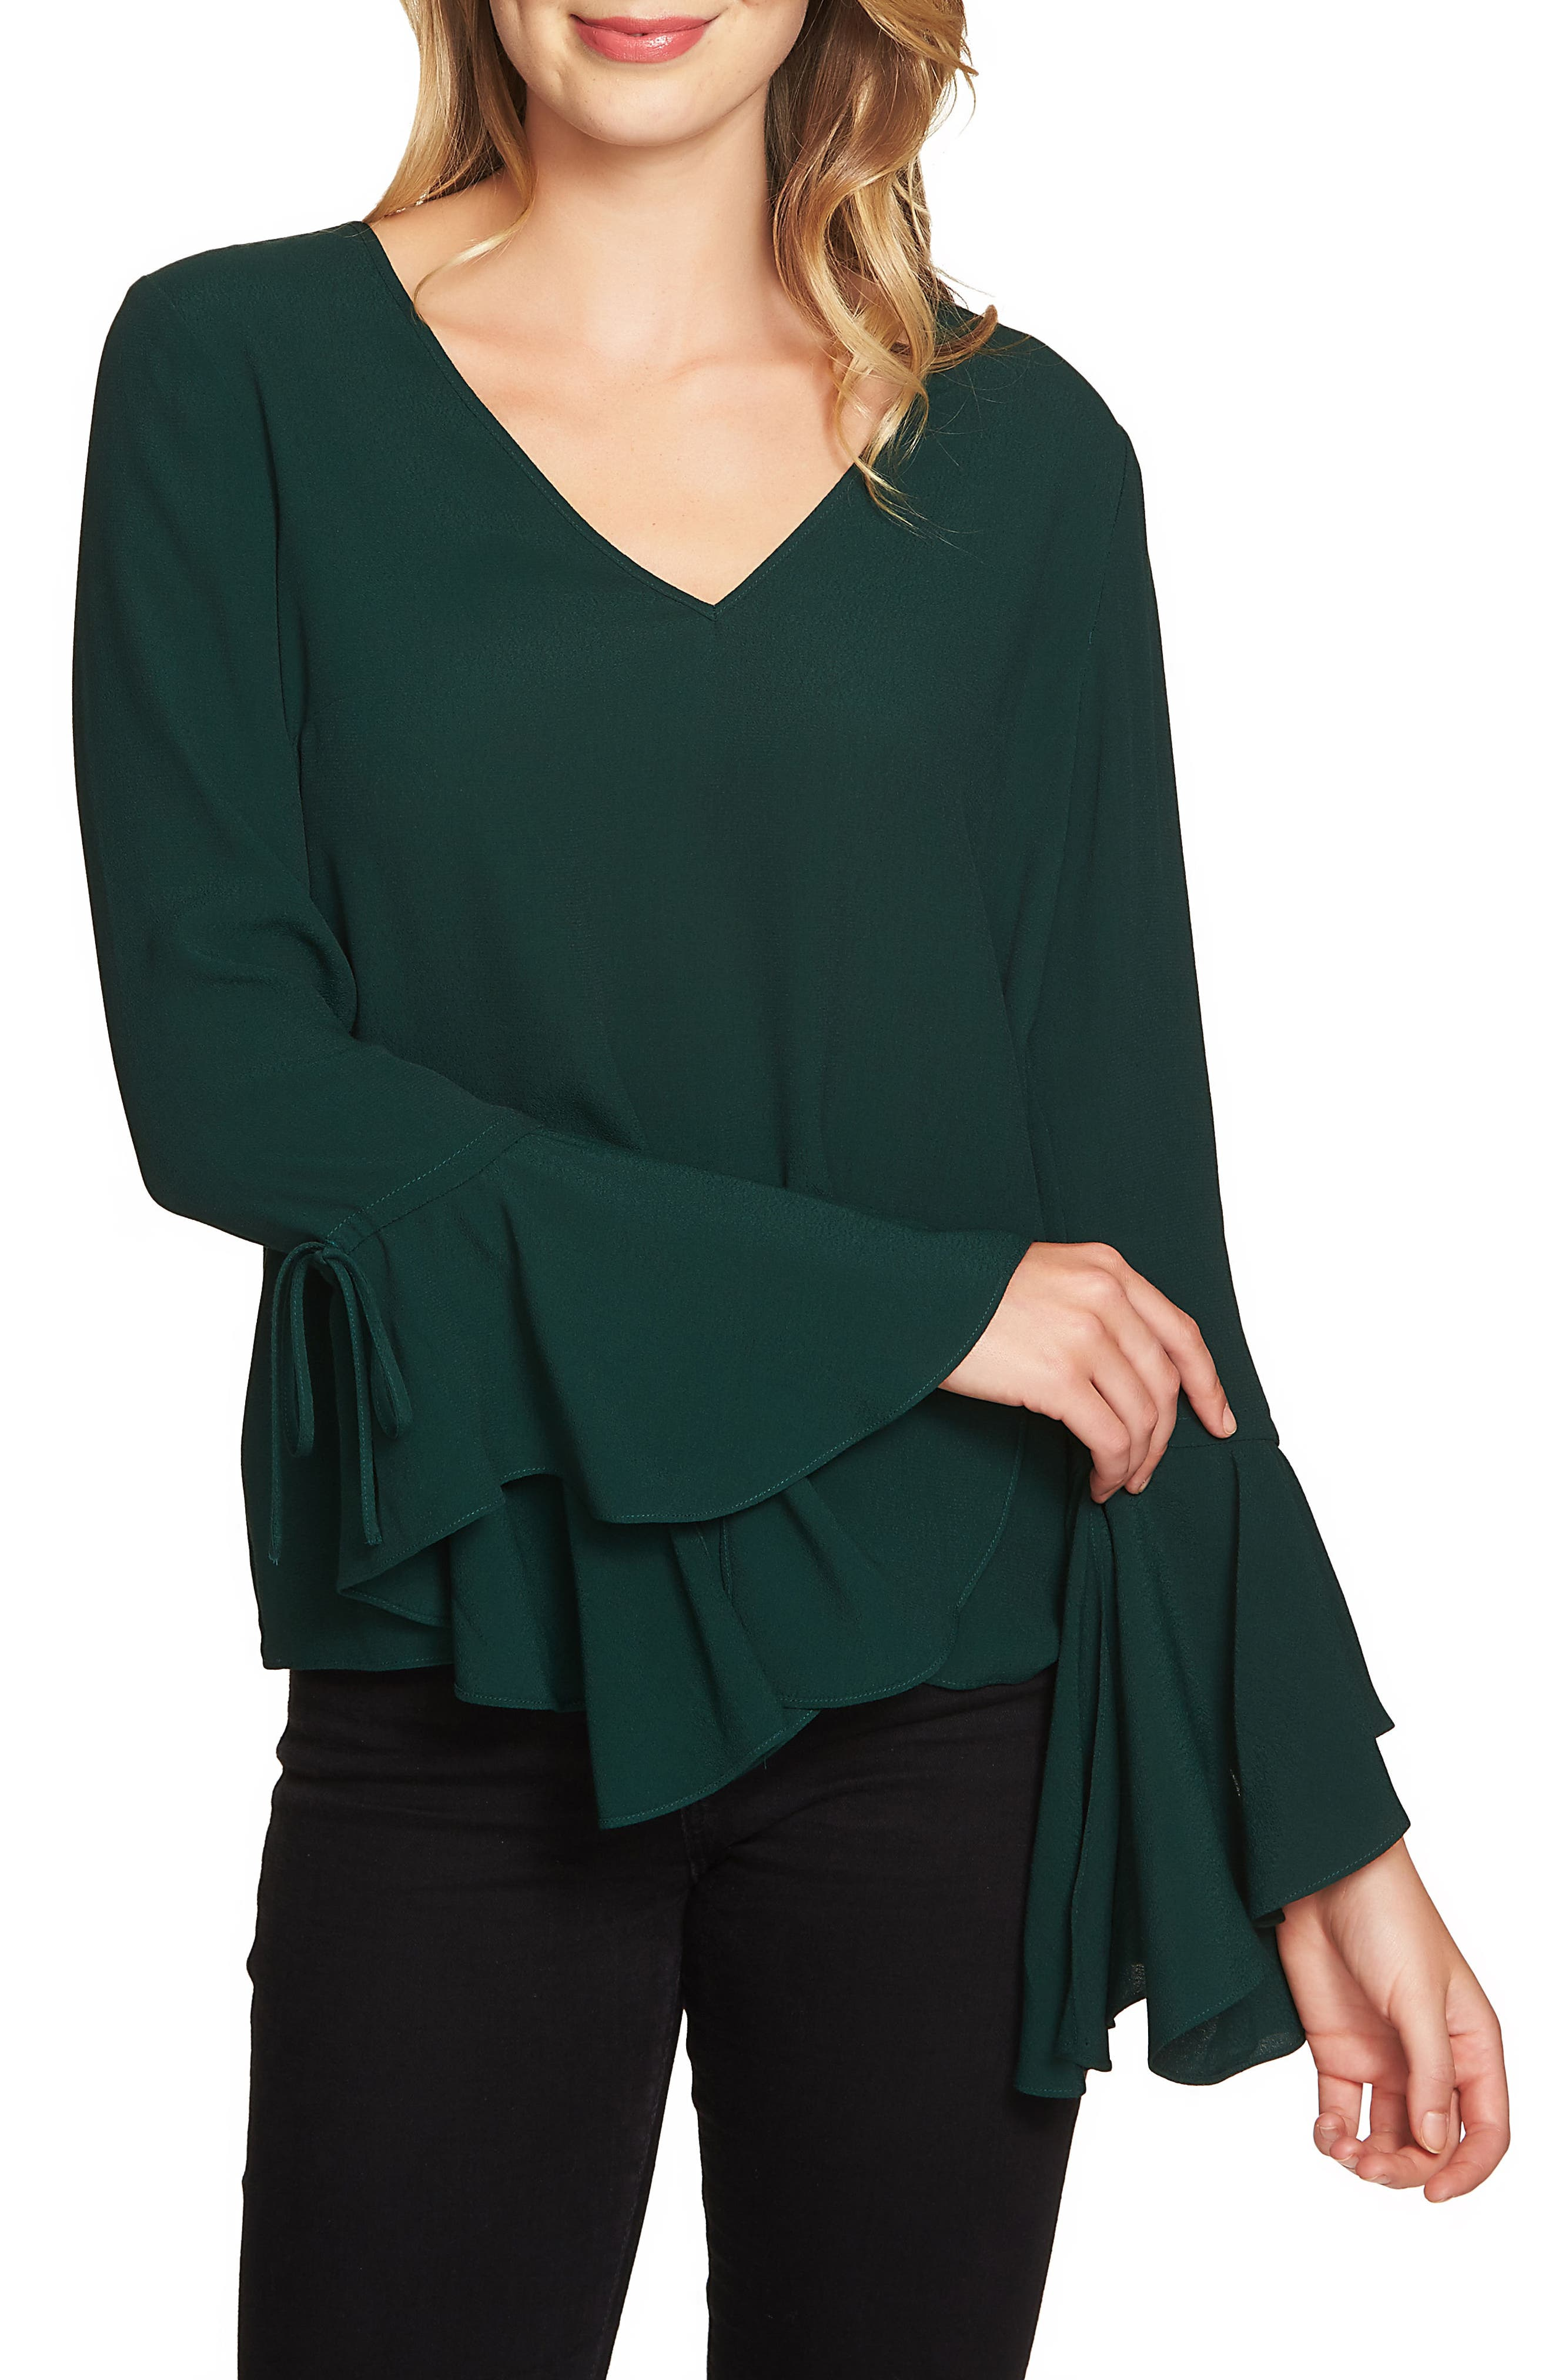 Cascade Sleeve Blouse,                             Main thumbnail 1, color,                             Jasper Green